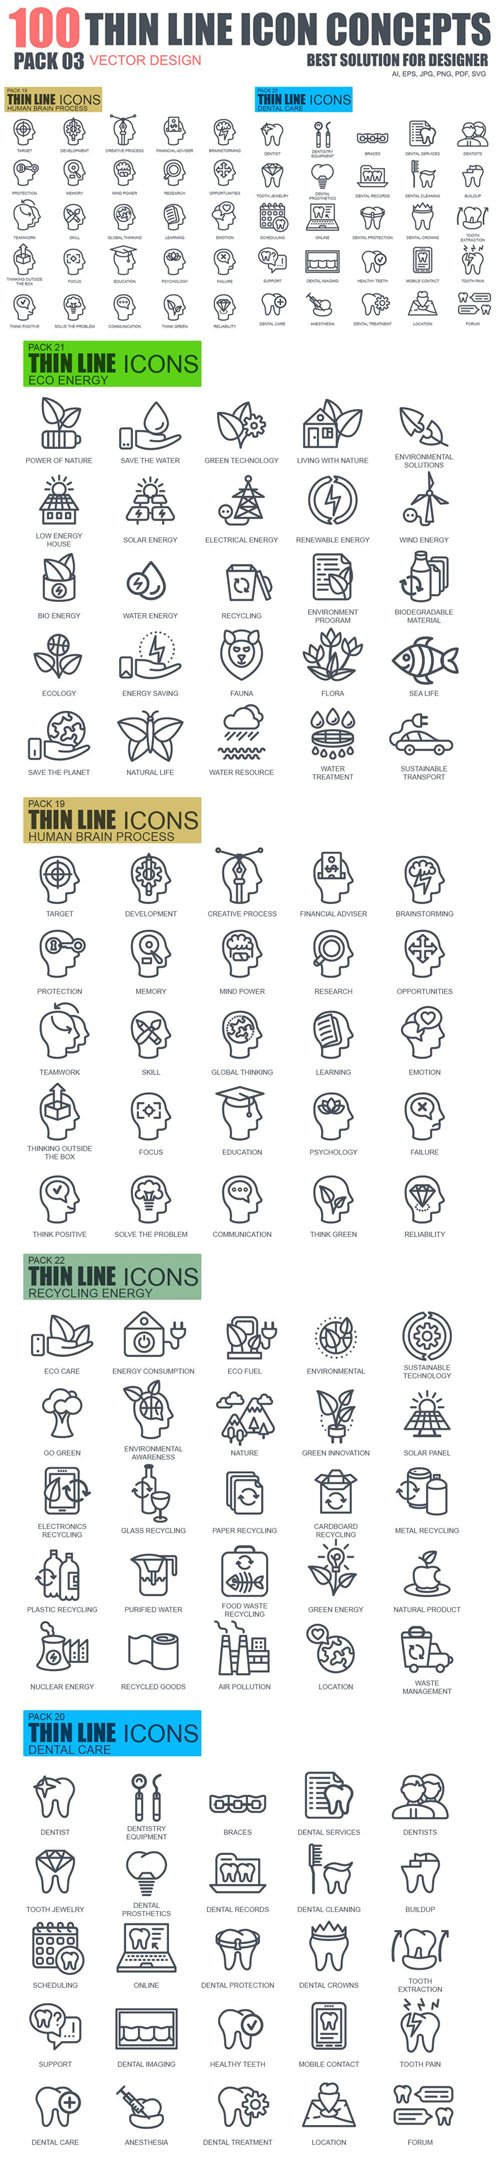 100 Thin Line Icons Concepts